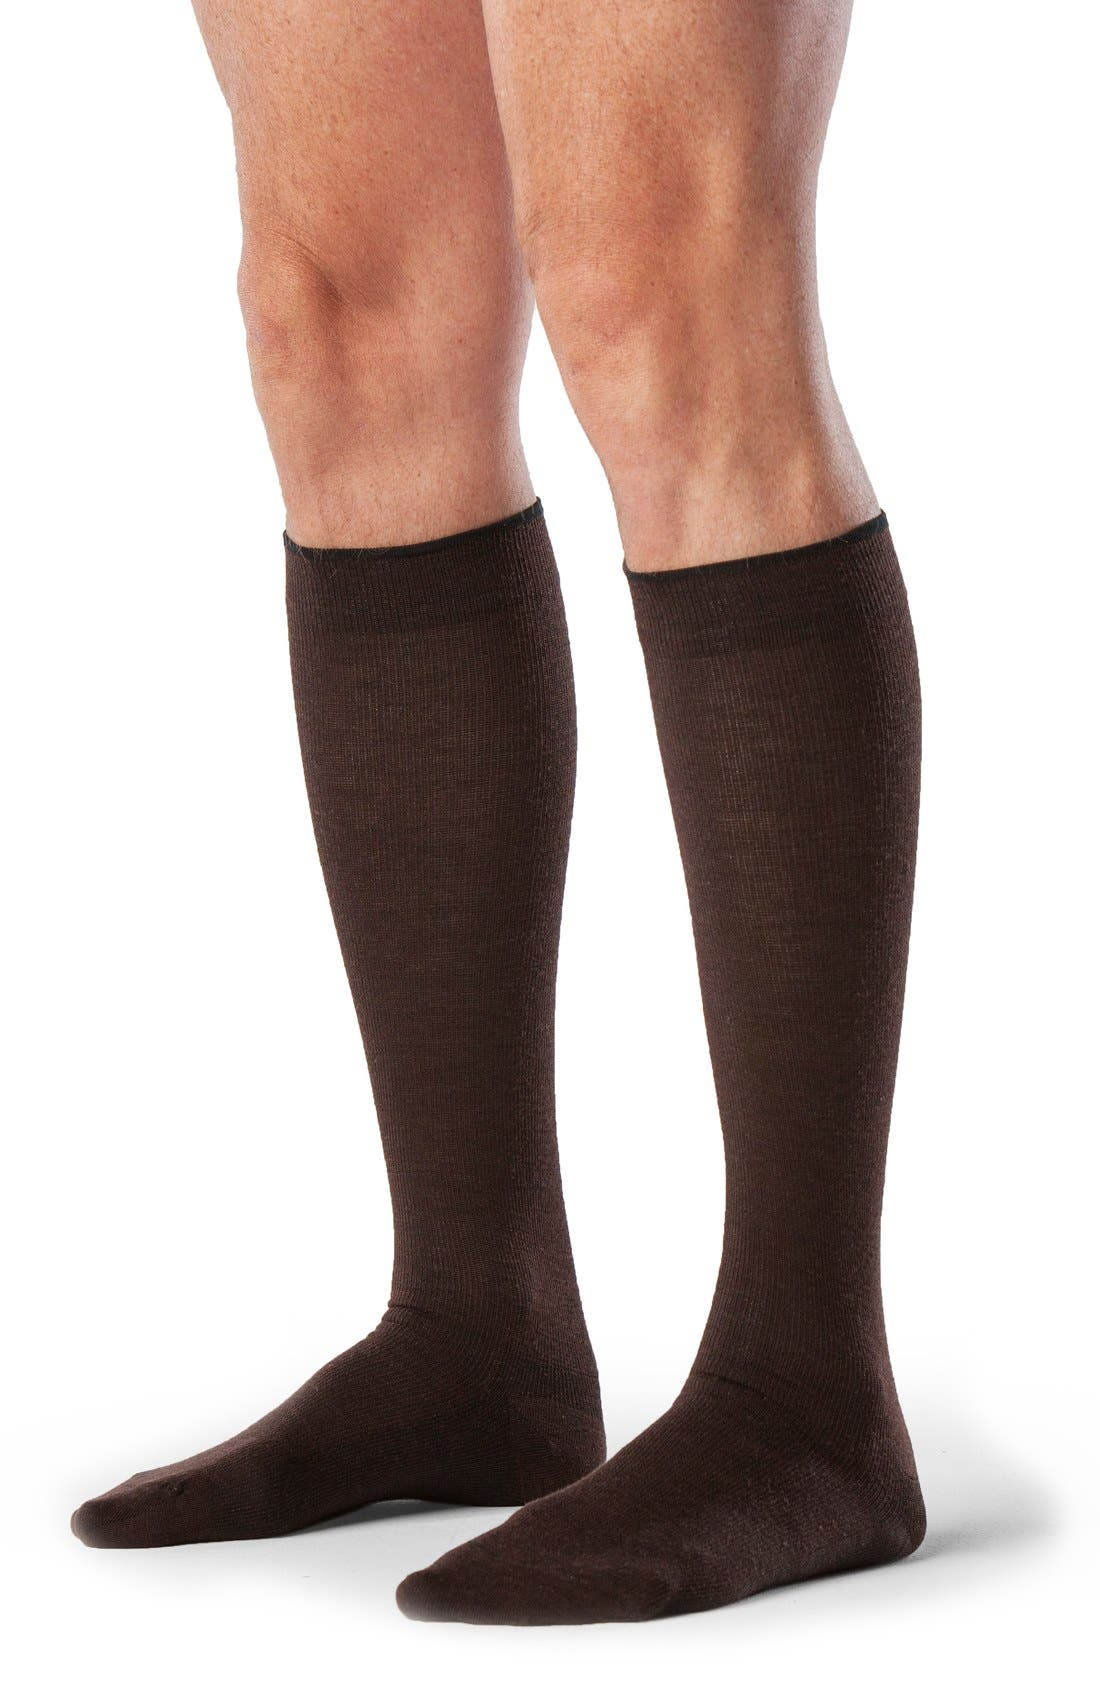 'Venturist' Over the Calf Socks,                             Alternate thumbnail 2, color,                             Brown